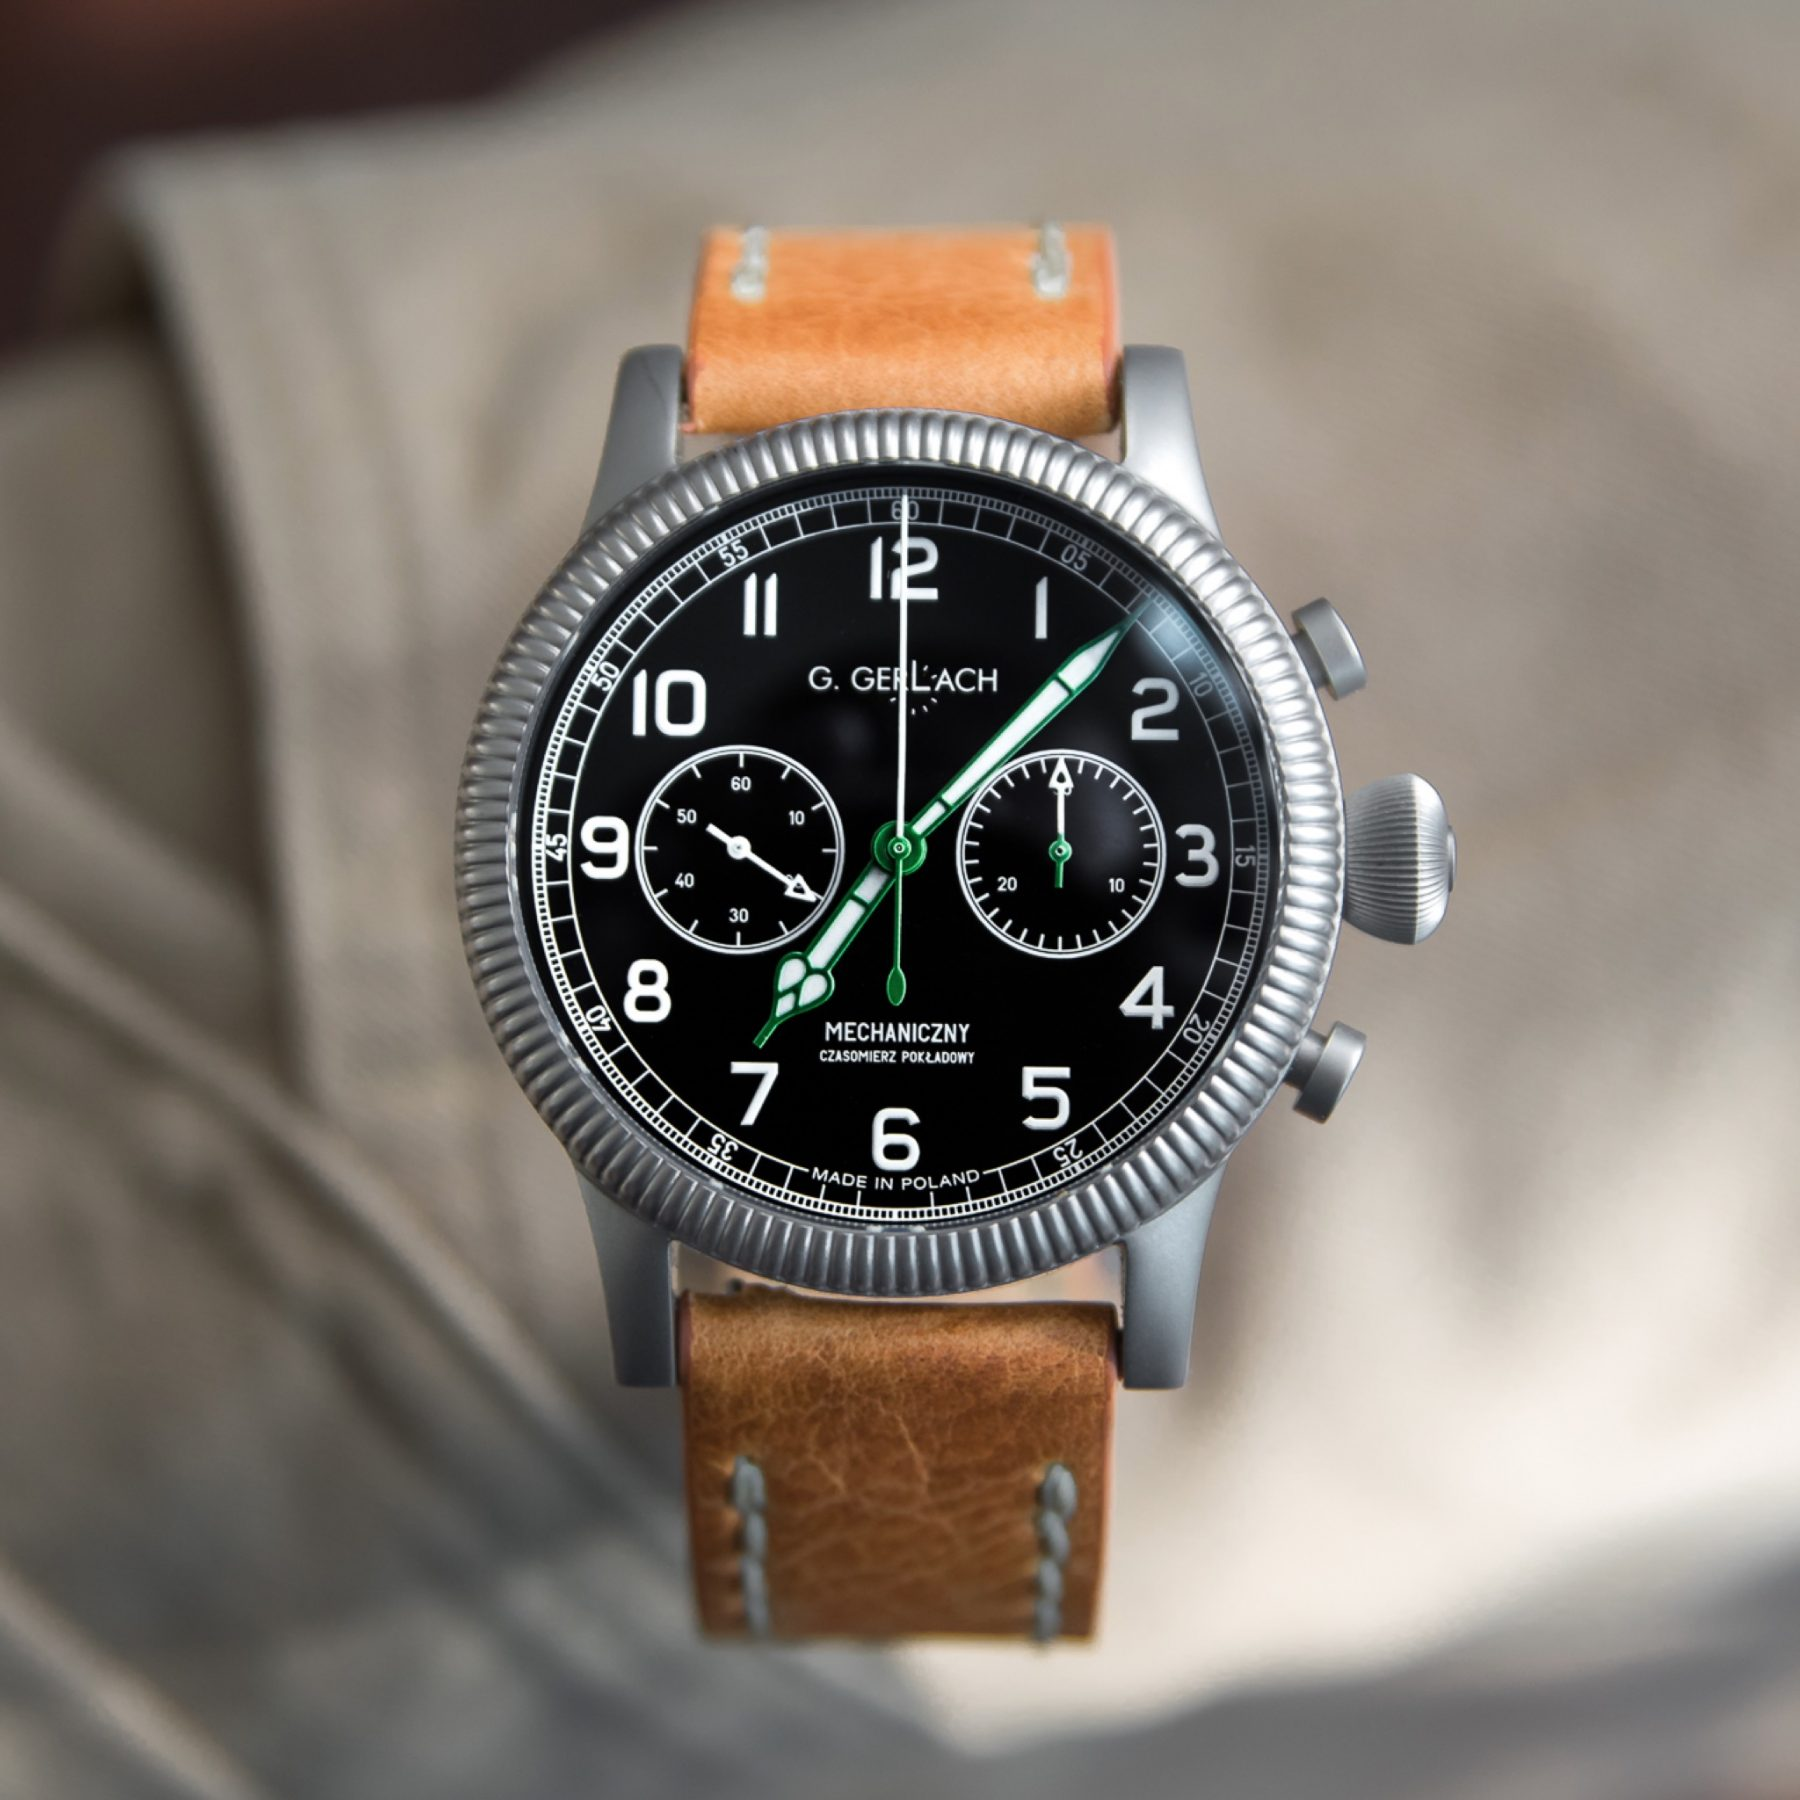 stand and feature in vintage pick of nato guide x strap watch timepiece design mod military help inspired week a the out watches this timex style todd snyder